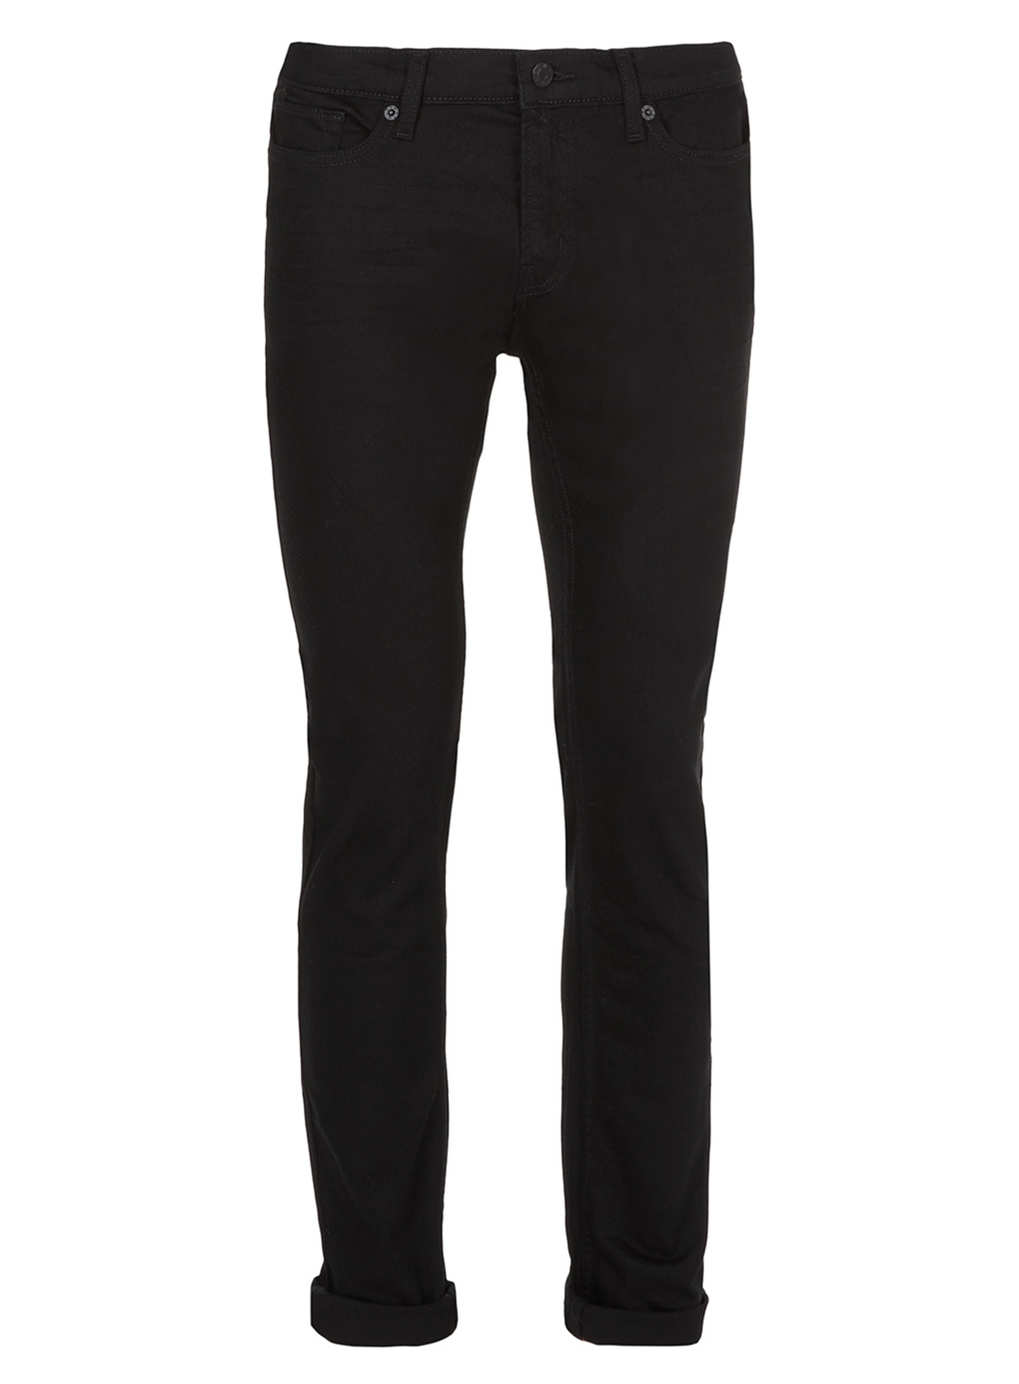 Black Stretch Skinny Jeans Mens